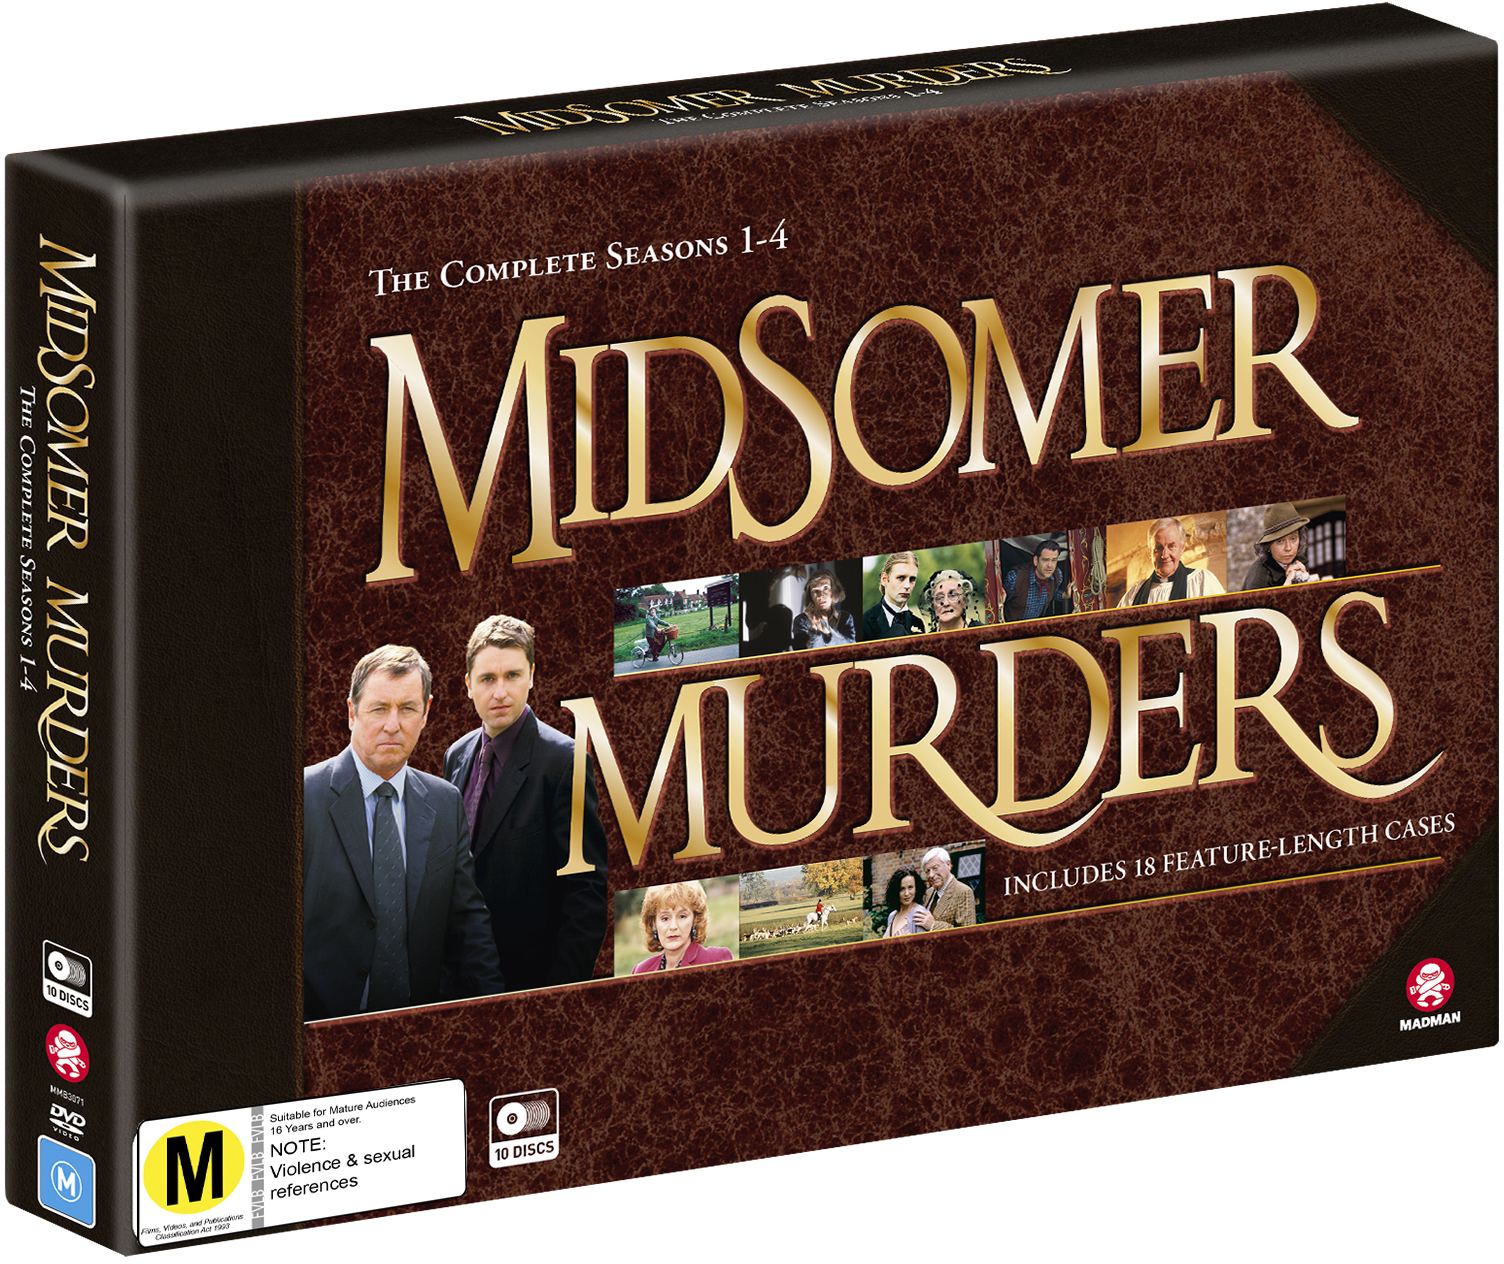 Midsomer Murders: Season 1 - 4 Collection (Limited Edition) on DVD image